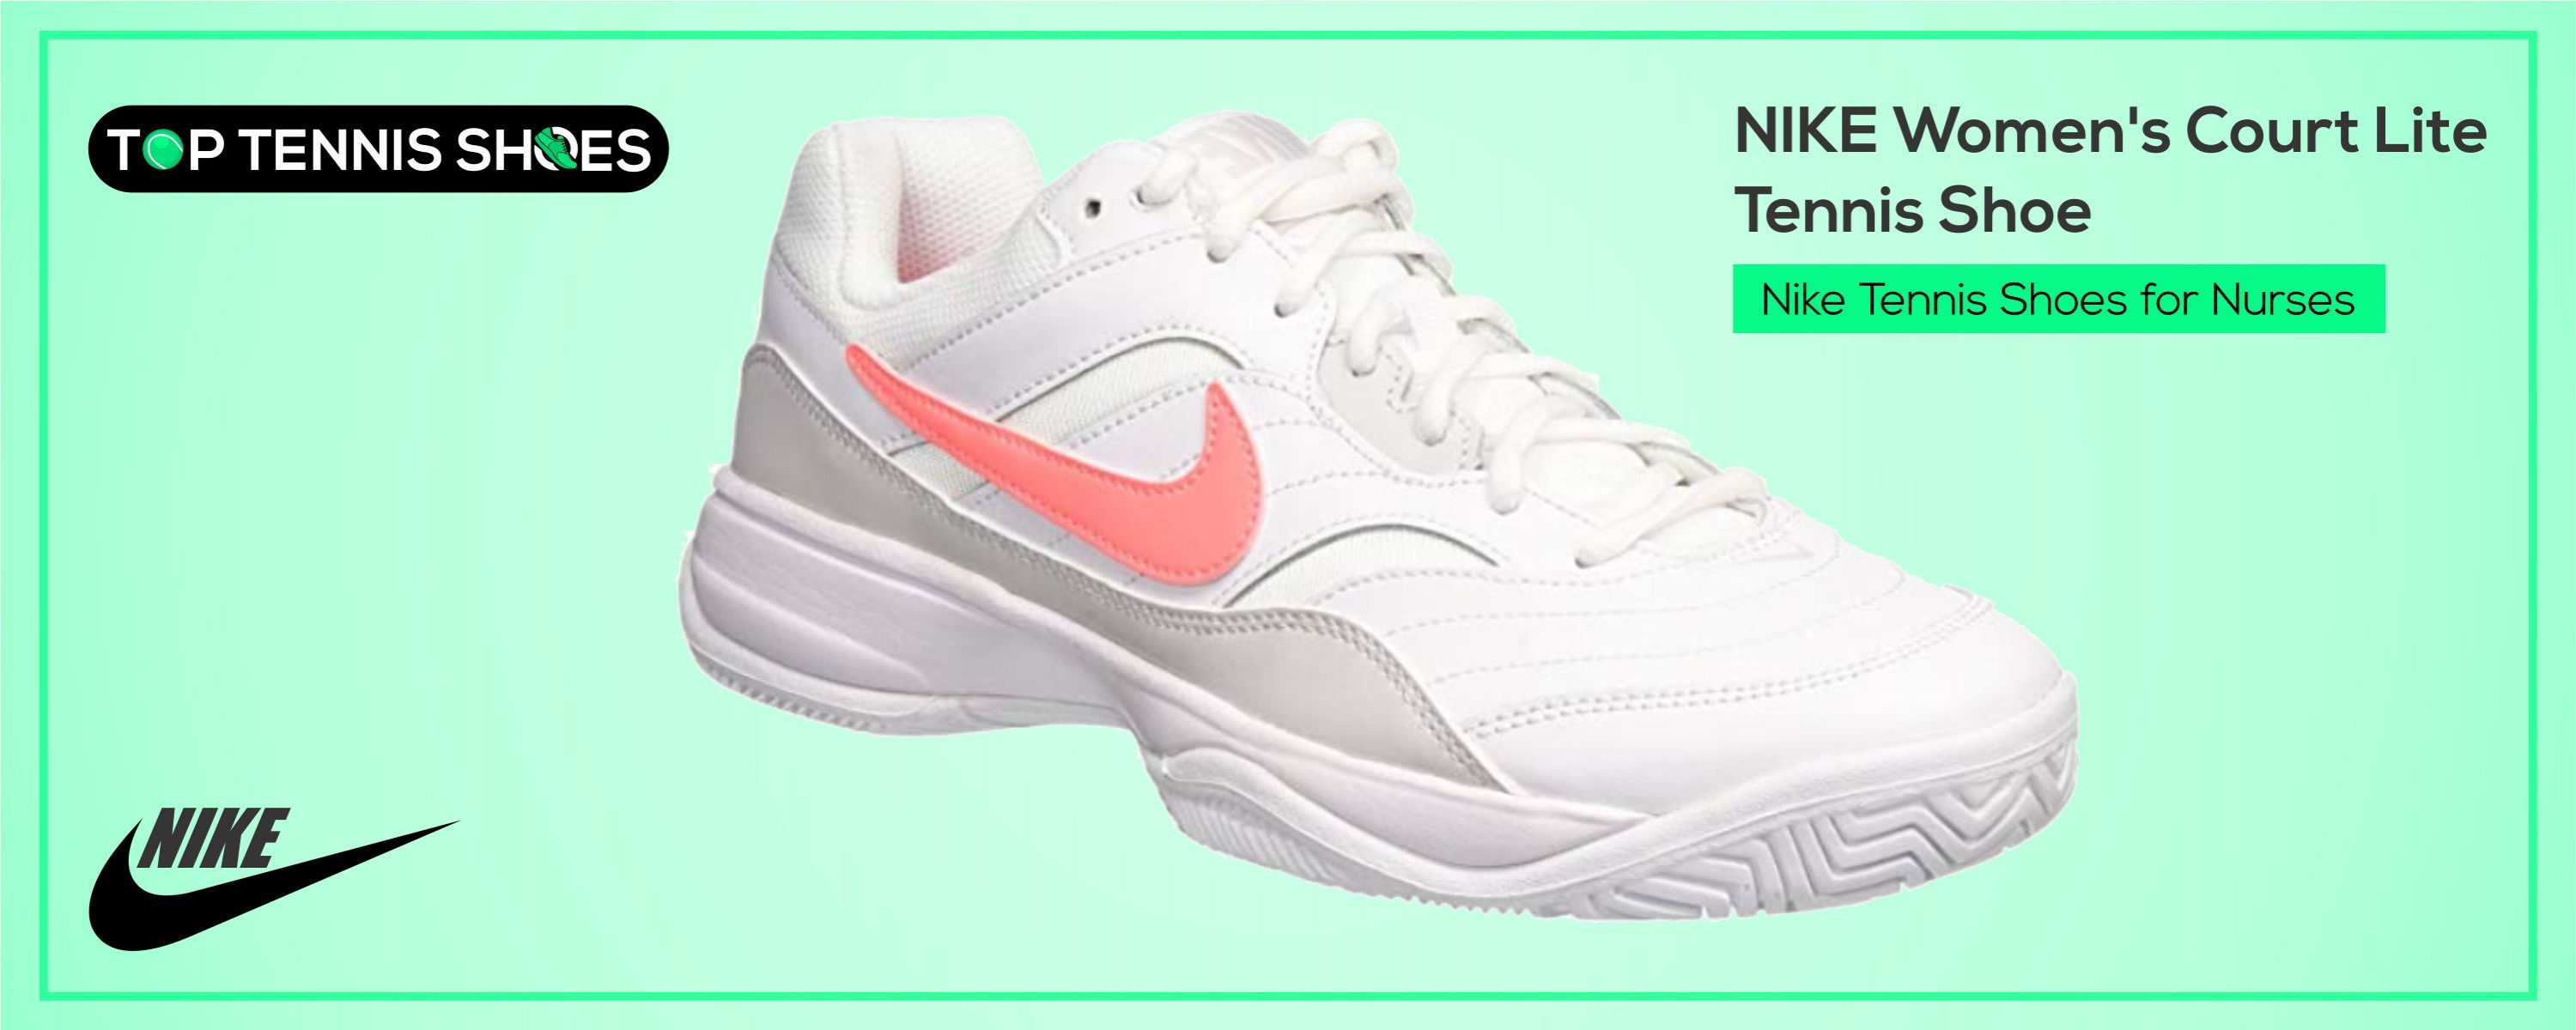 Affordable Tennis Shoes for Nurses